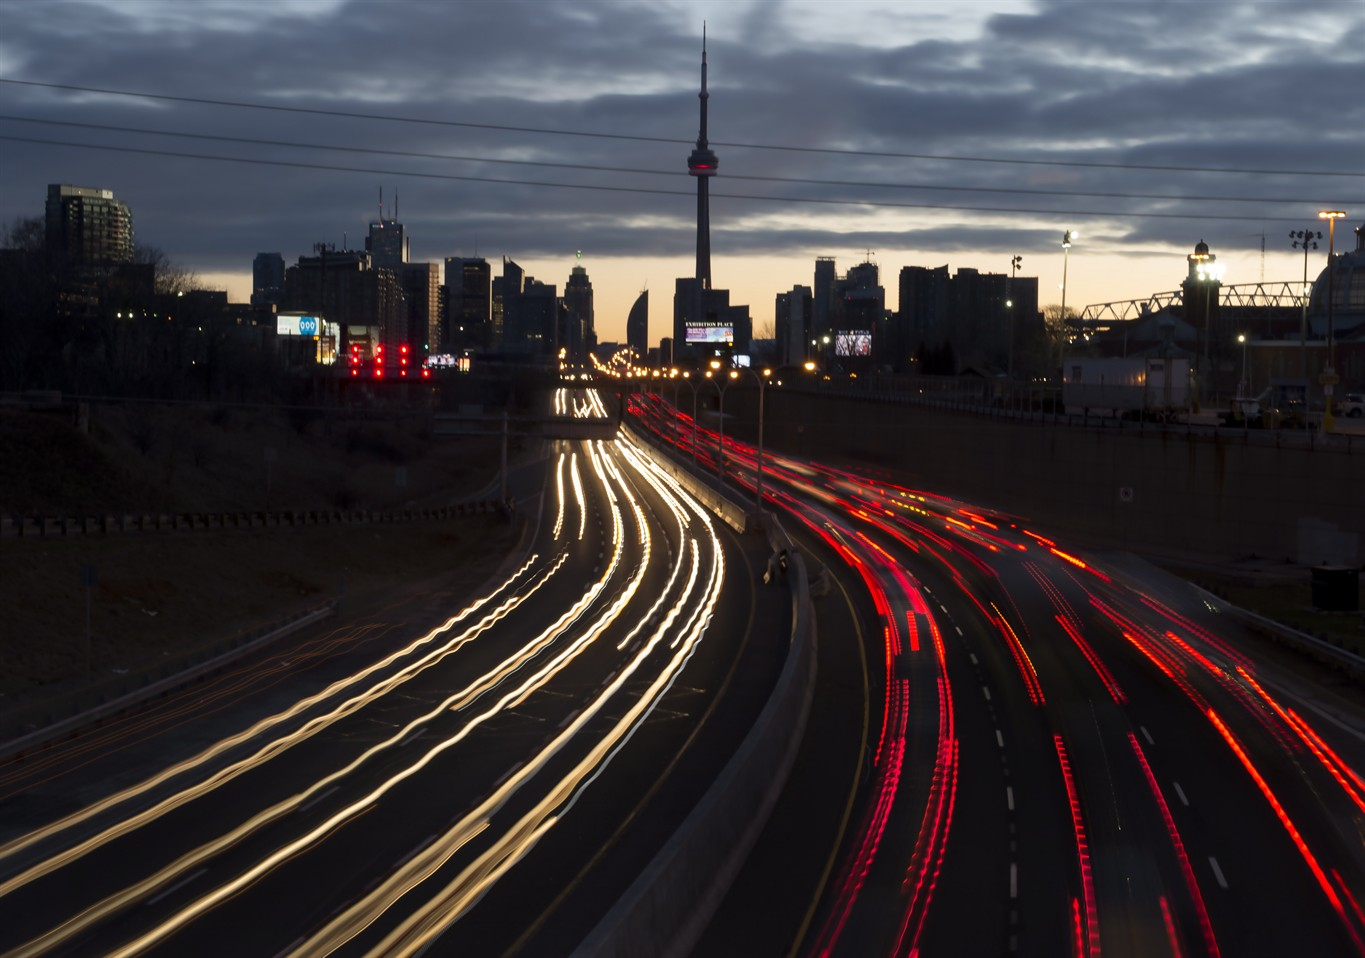 No new sources of revenue as Wynne rejects road tolls